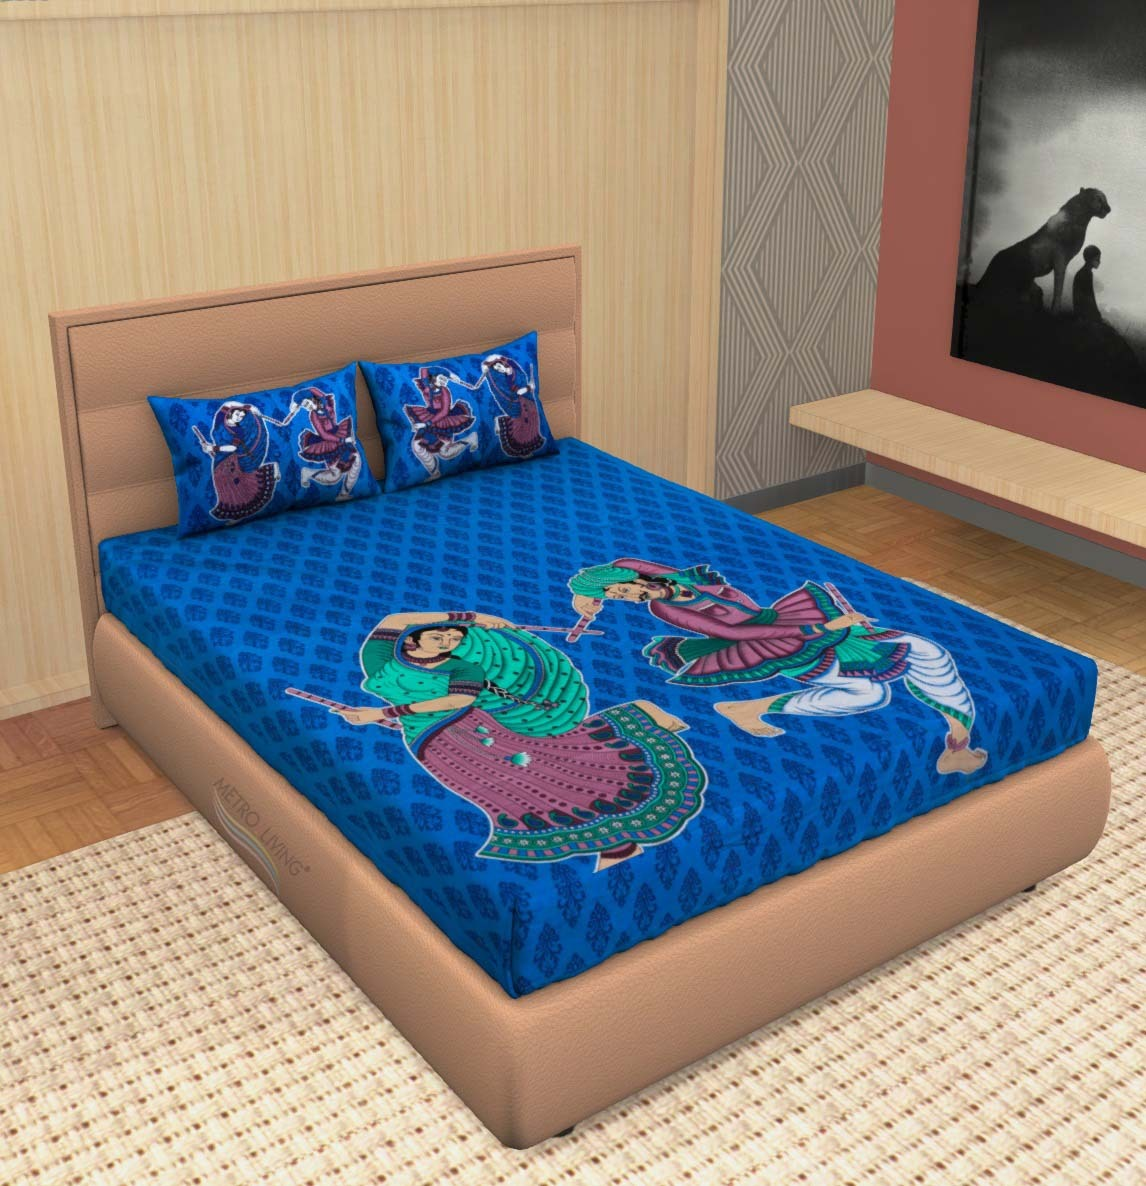 AKR CREATION COTTON DOUBLE Bedsheet king size 90 Inch X 100 Inch  (1 Double Bedsheet, 2 Pillow Covers)